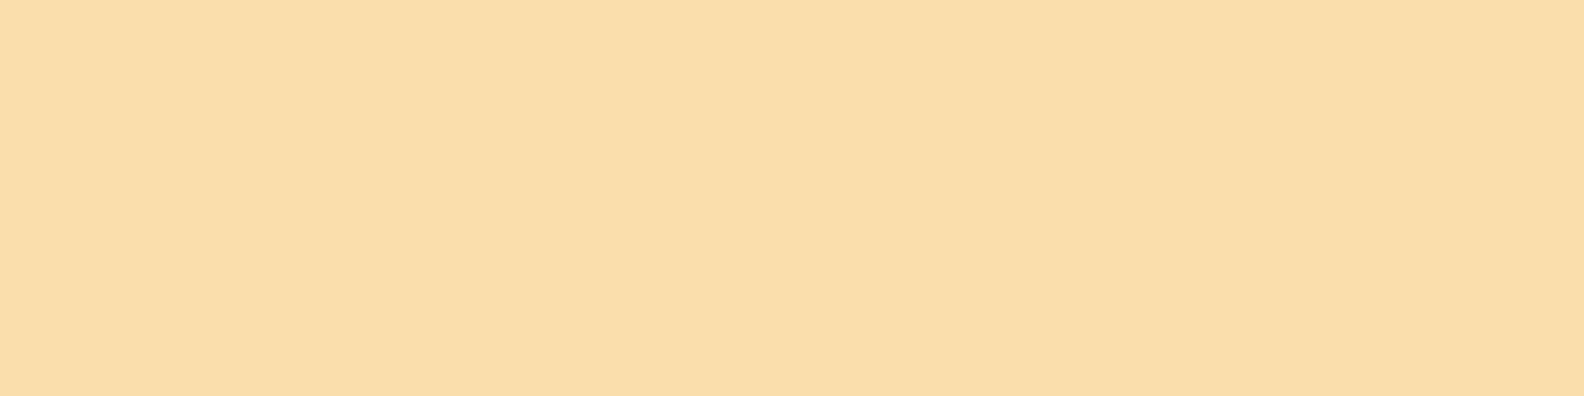 1584x396 Peach-yellow Solid Color Background